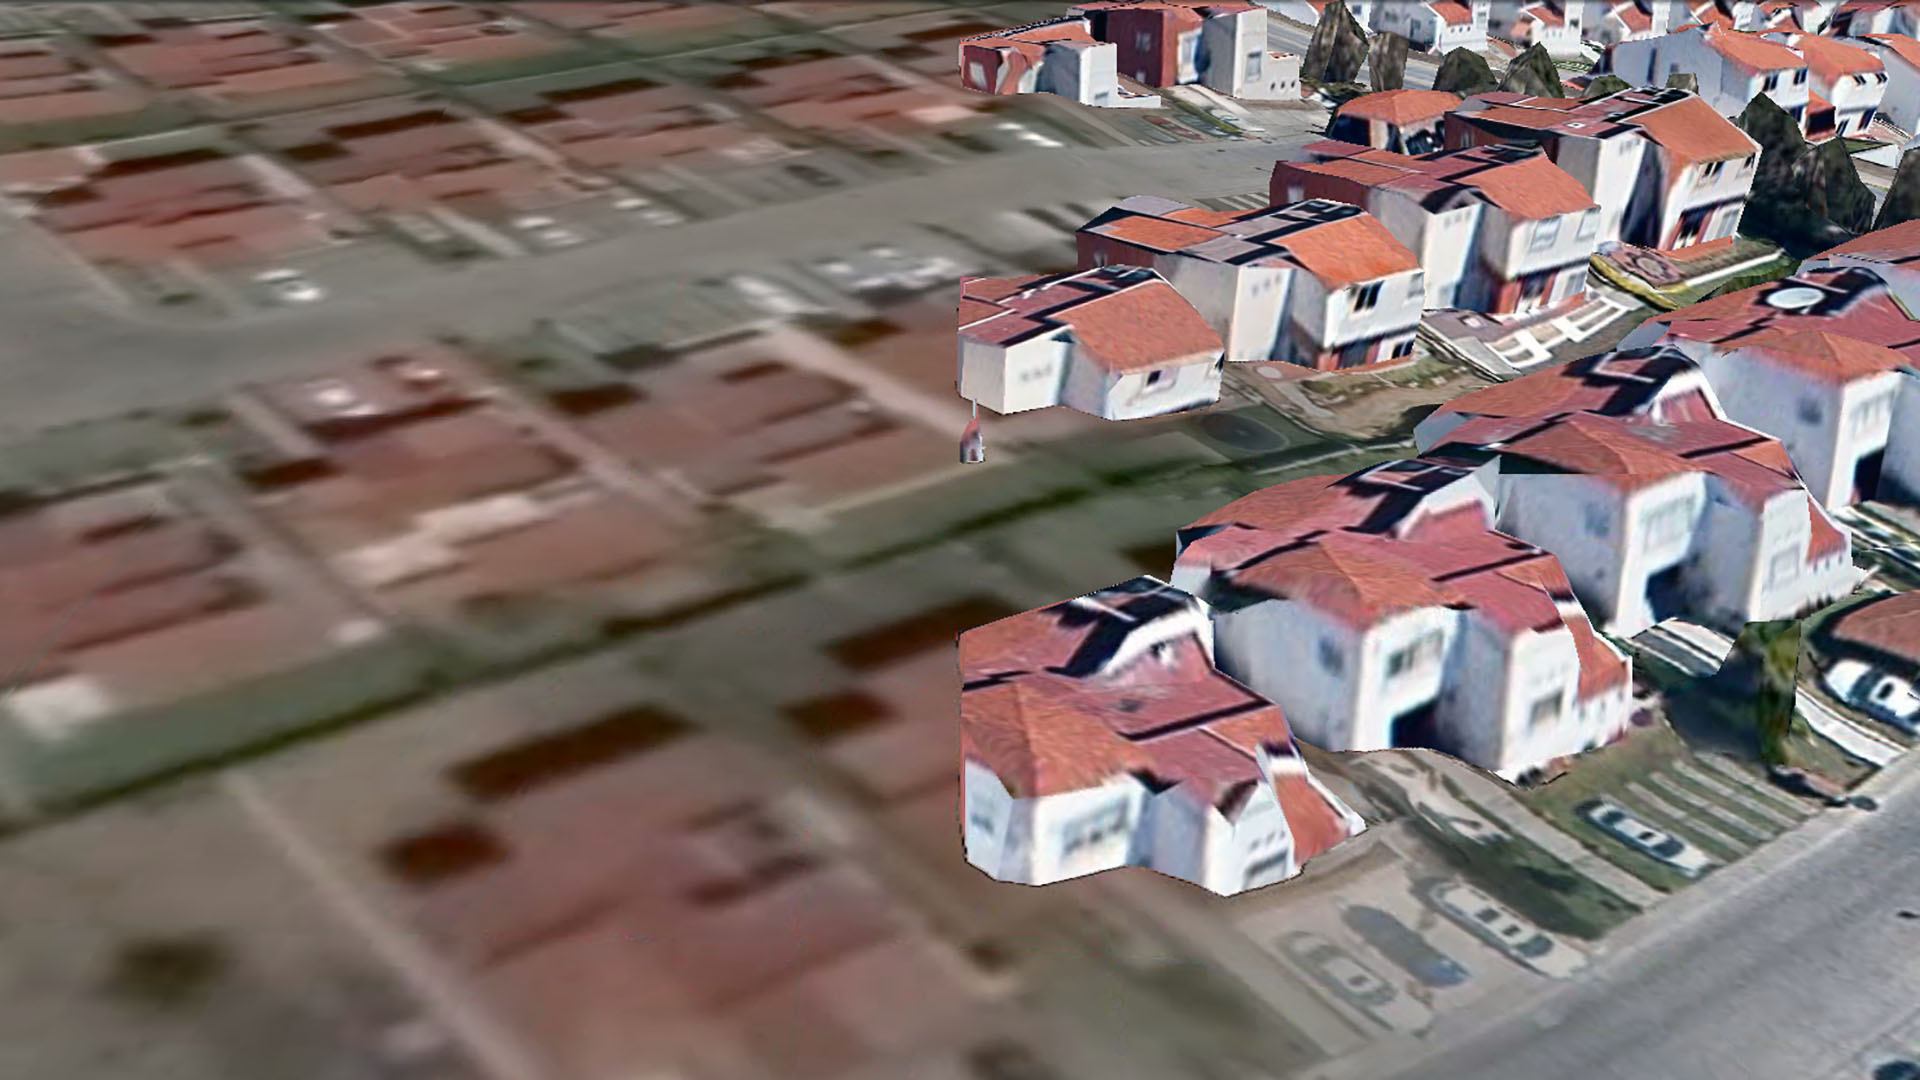 Real Esmeralda, a housing development in Andalucía, on the northwest frontier of the digital model of Mexico City, as rendered in Google Earth 7.1.2.2041.